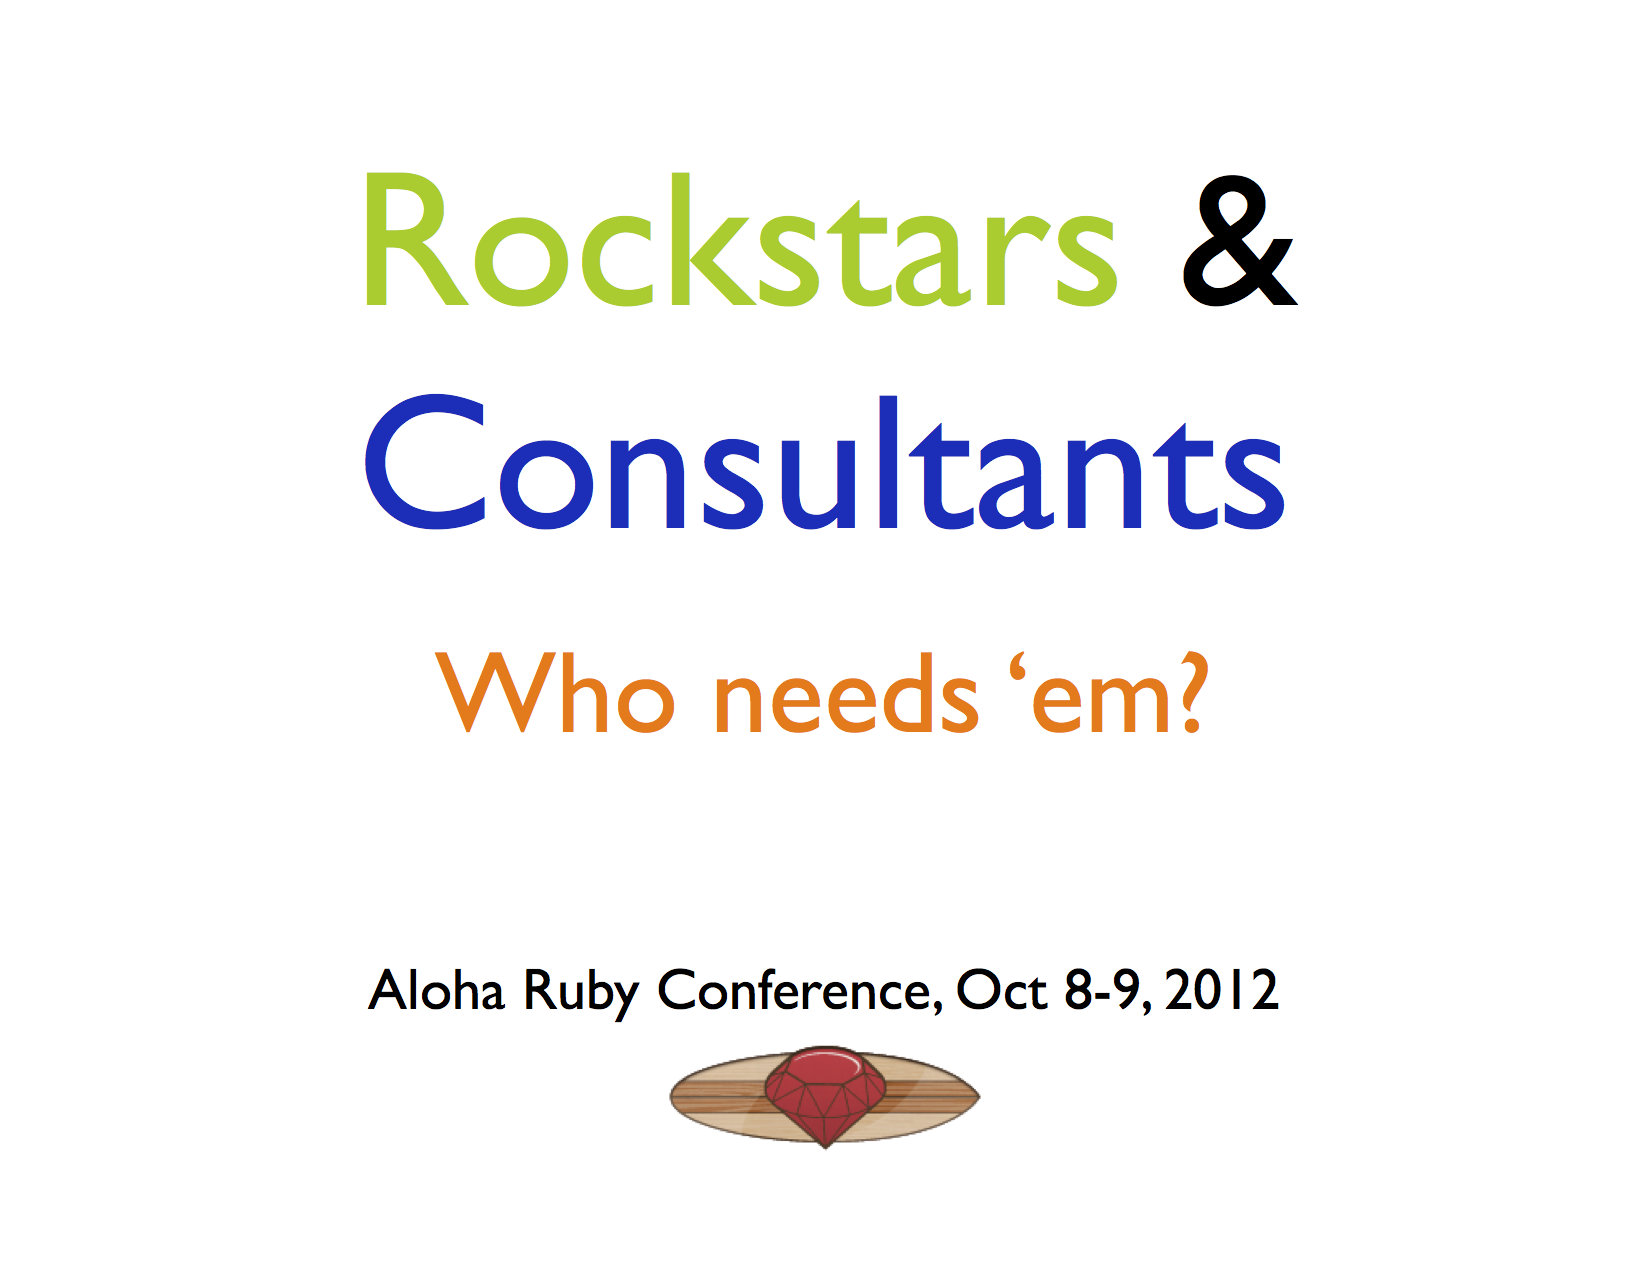 Rockstars & Consultants, who needs 'em?